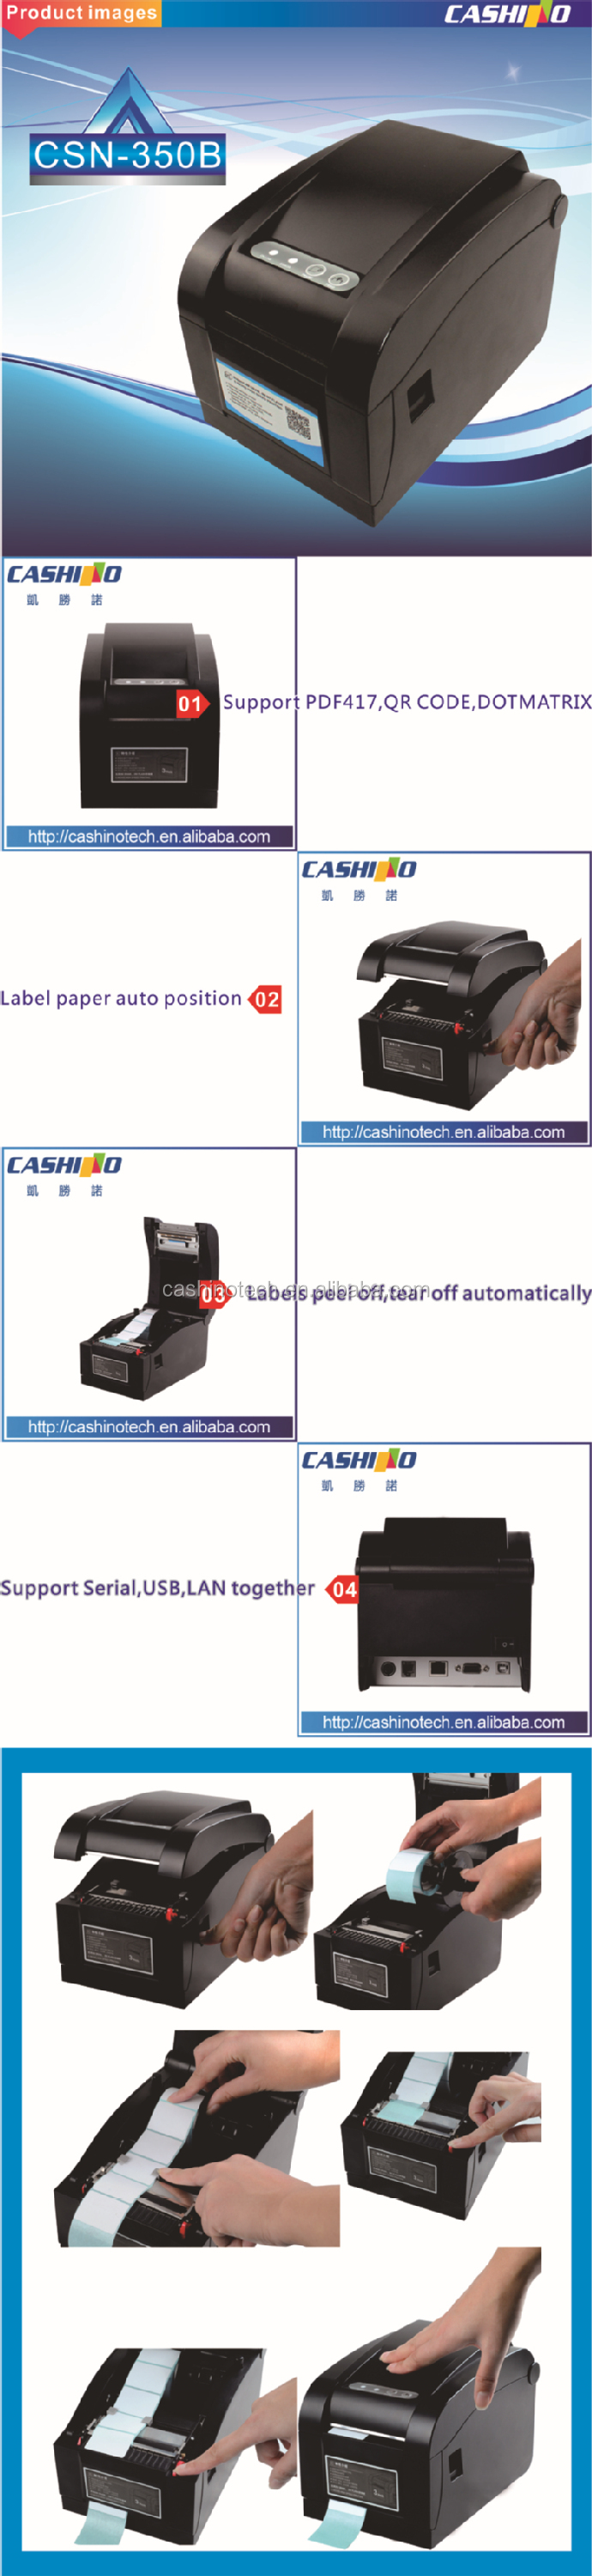 Adhesive labelCheap barcode label thermal printer/ barcode printer label thermal with low price CSN-350B